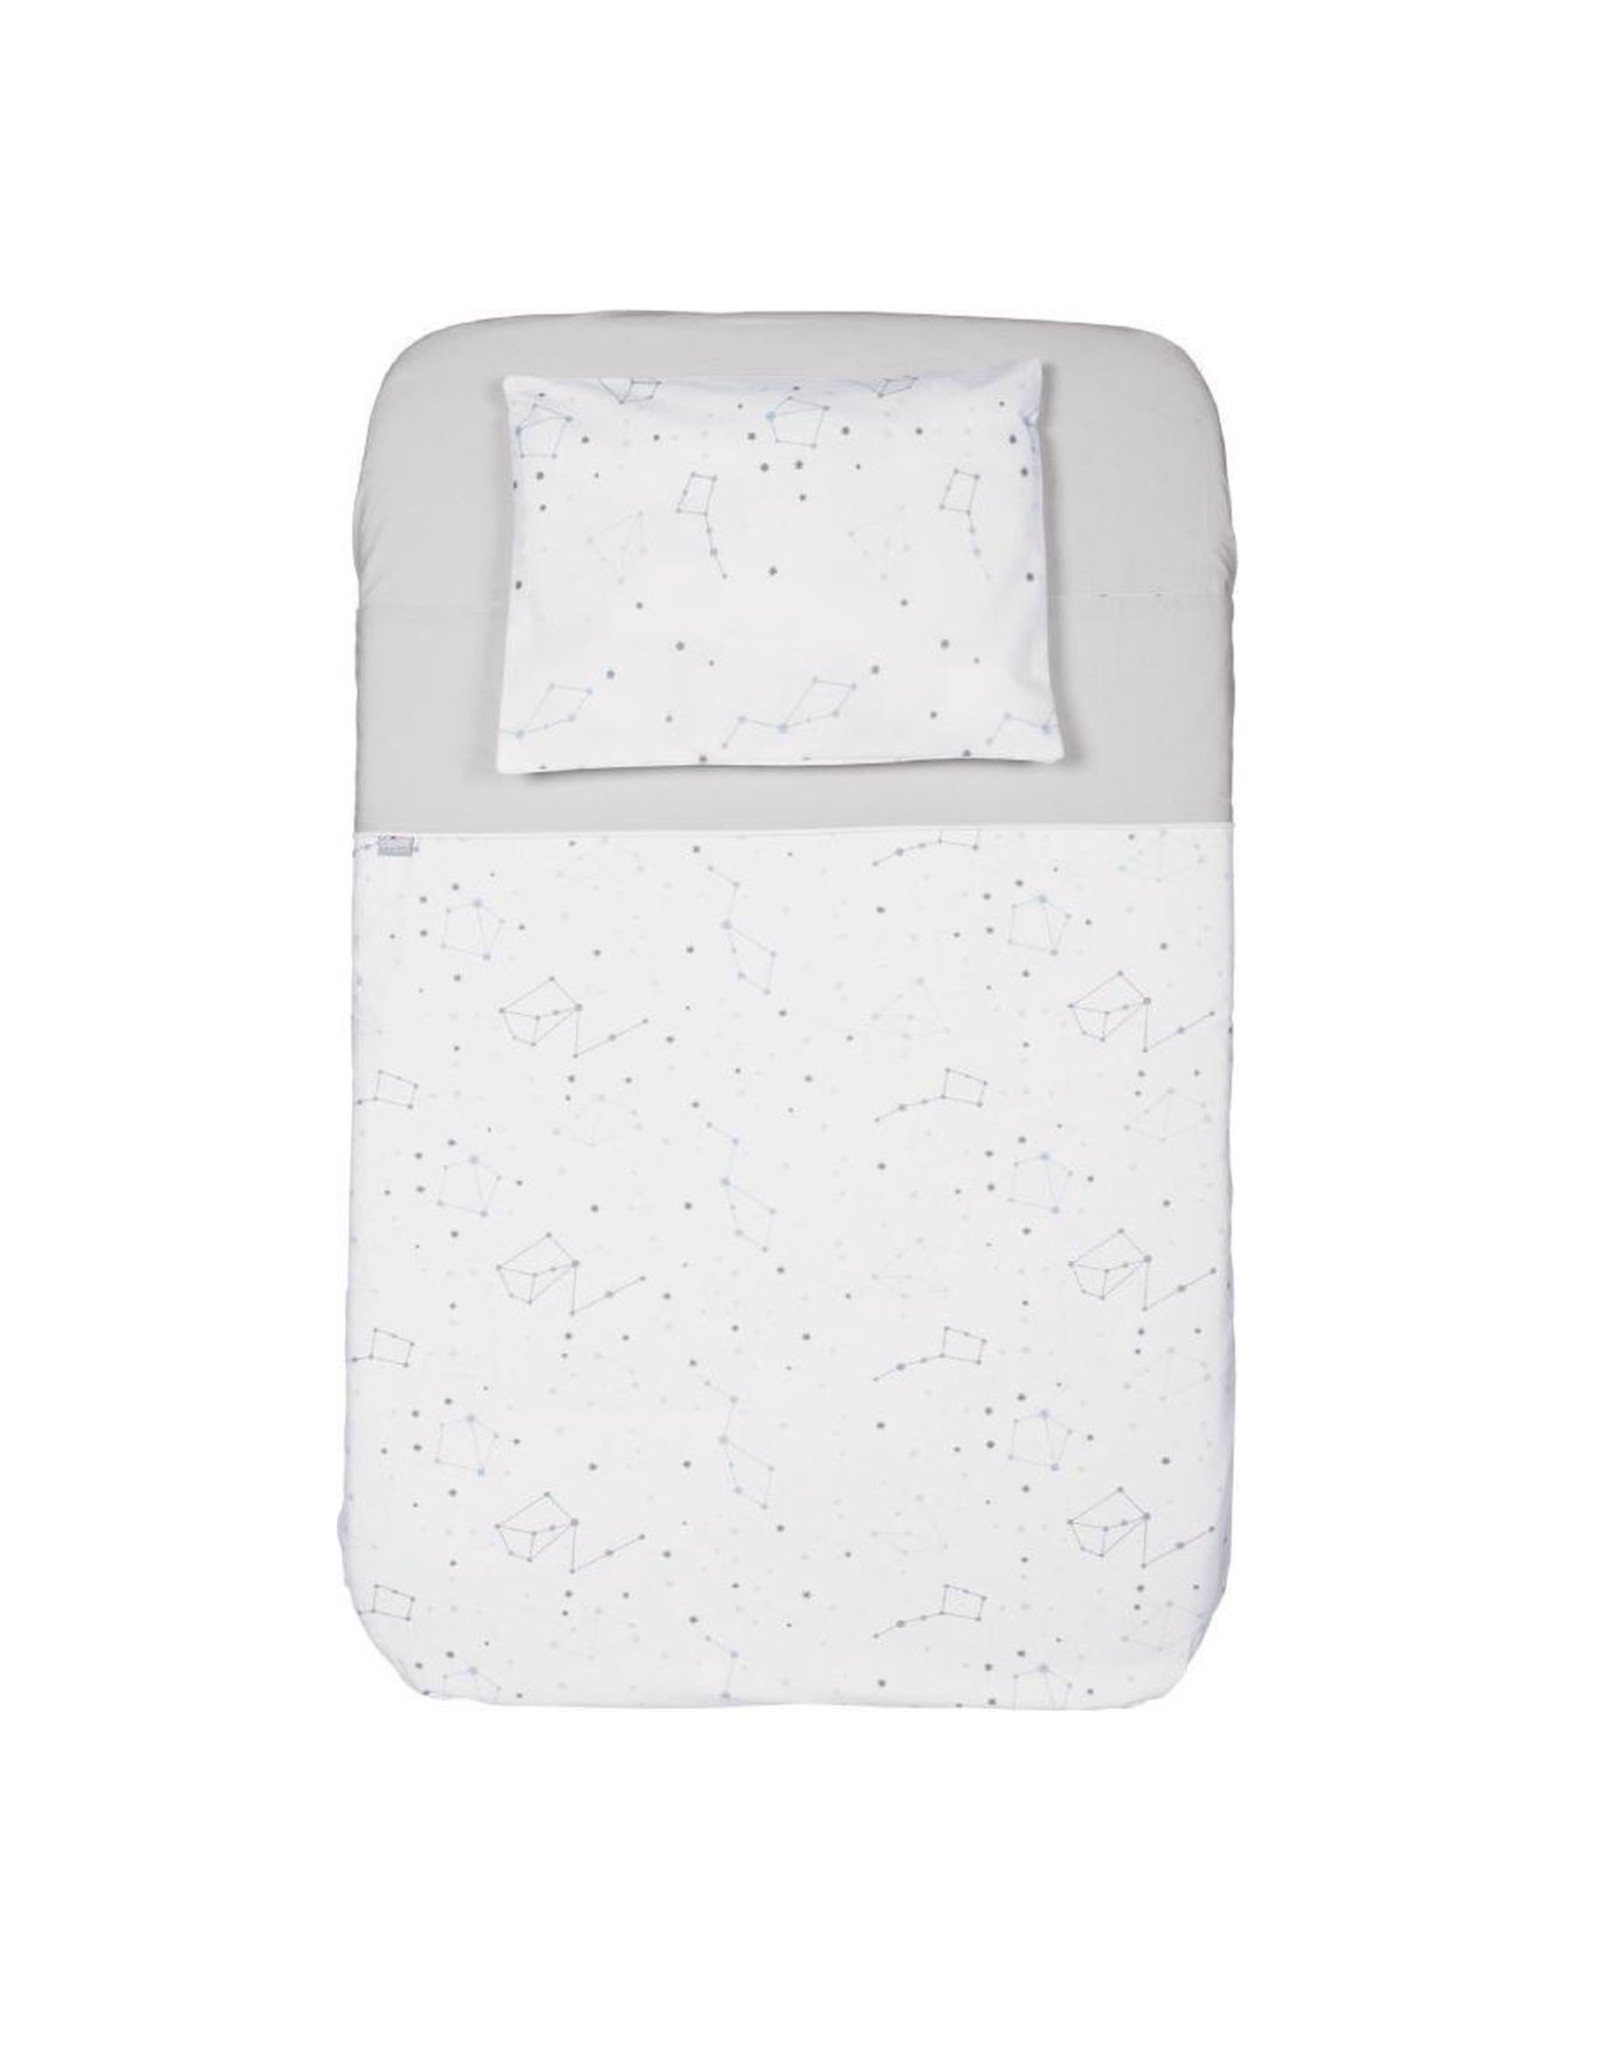 Chicco Chicco - Next2Me - Fitted sheet for baby mattress - 3 piece set including pillowcase and duvet